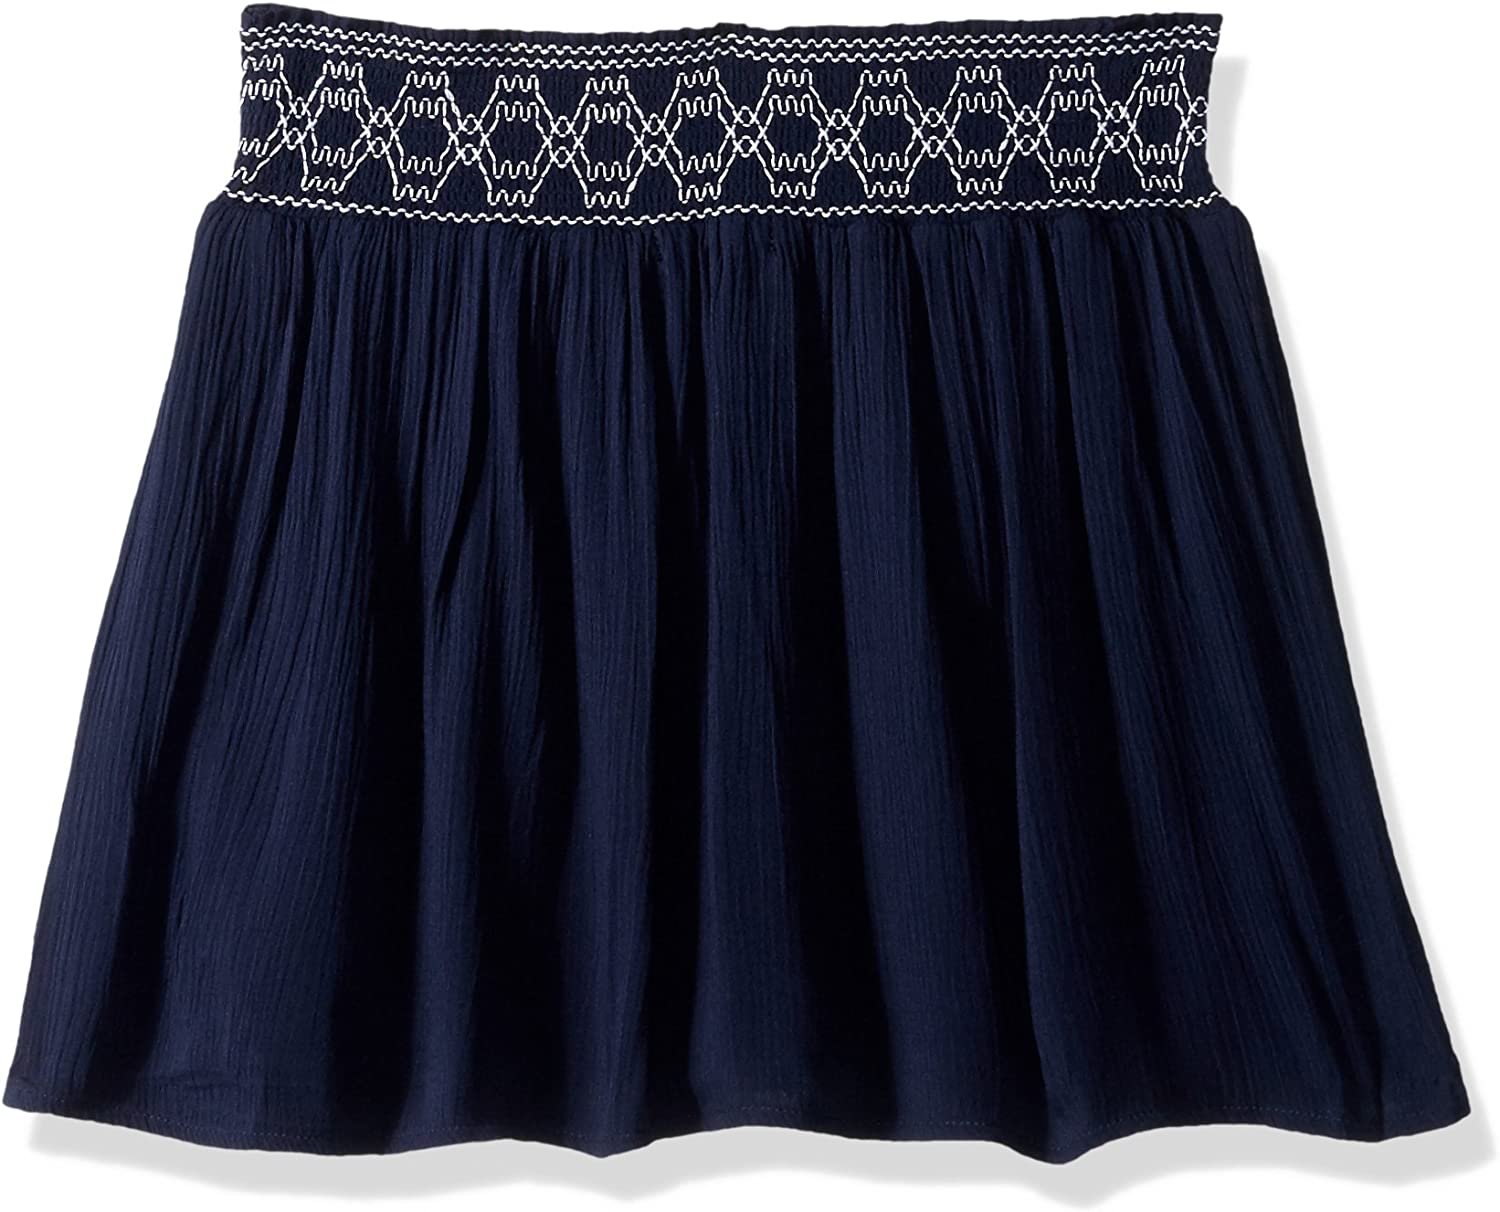 My Michelle Girls Big Soft Shorts with Elastic Waist and Embroidery